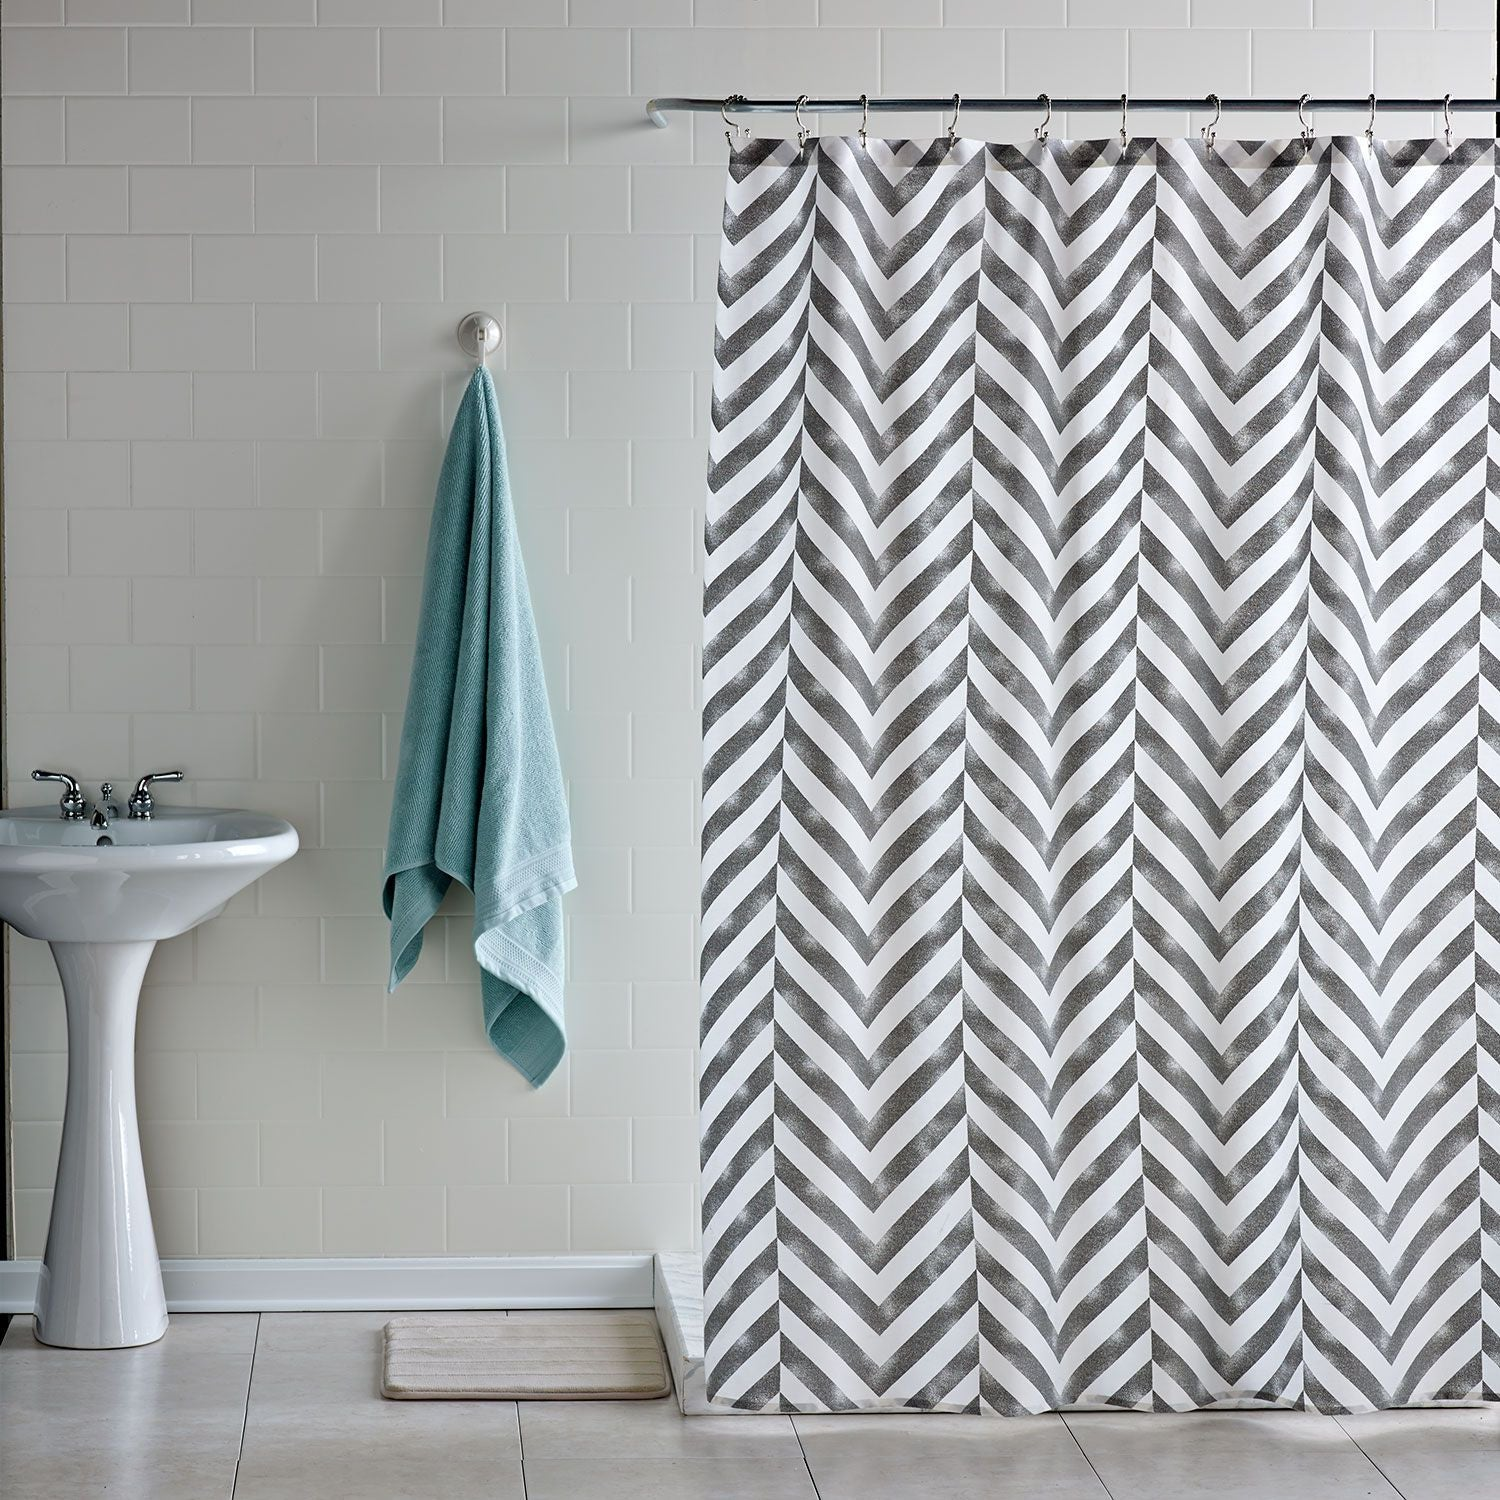 Throw pillows cards mugs shower curtains - Tiled Chevron Shower Curtain